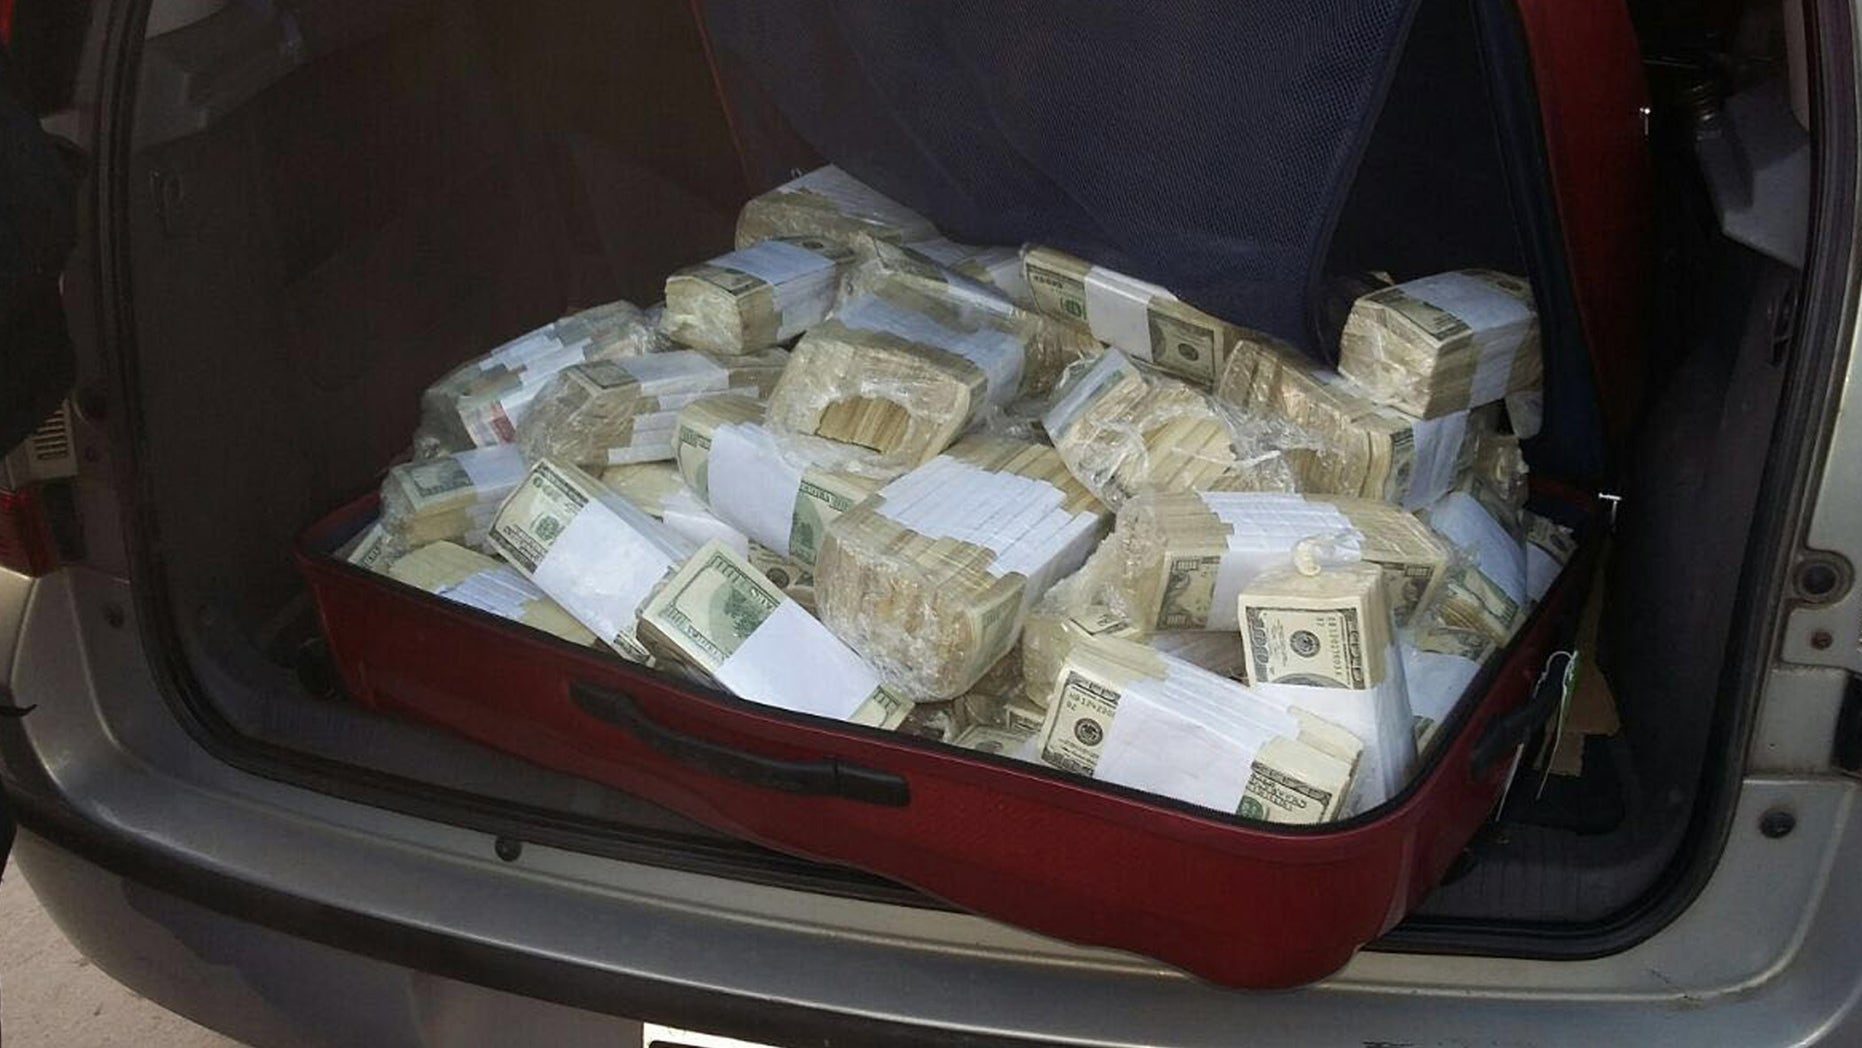 BEST QUALITY AVAILABLE - In this photo released by the Buenos Aires Province Security Ministry, wads of cash sit in the back of a vehicle shortly after former Public Works Secretary Jose Lopez was caught by police hiding millions at a monastery in the outskirts of Buenos Aires, Argentina, Tuesday, June 14, 2016. Lopez, an official in the government of former President Cristina Fernandez was arrested while trying to hide millions in cash and jewels. (Buenos Aires Province Security Ministry via AP)